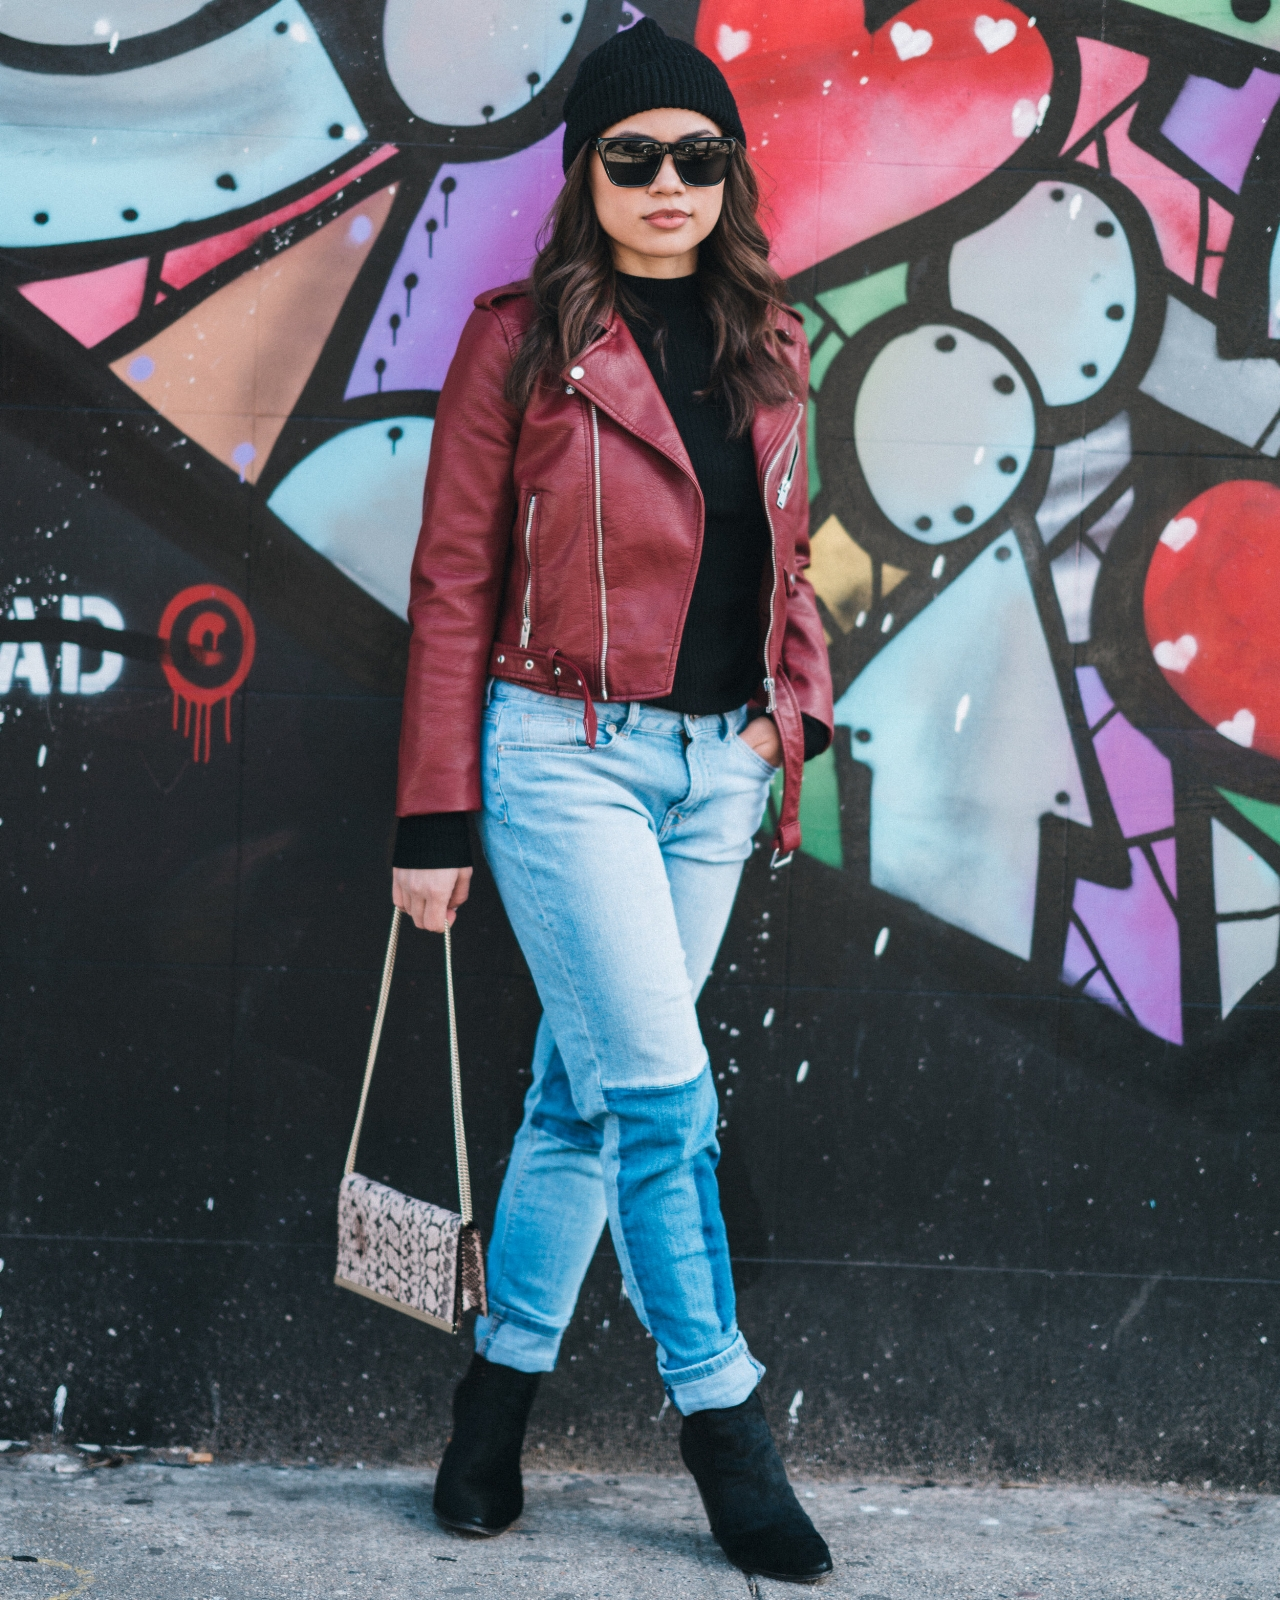 ZARA RED LEATHER JACKET PATCHWORK JEANS